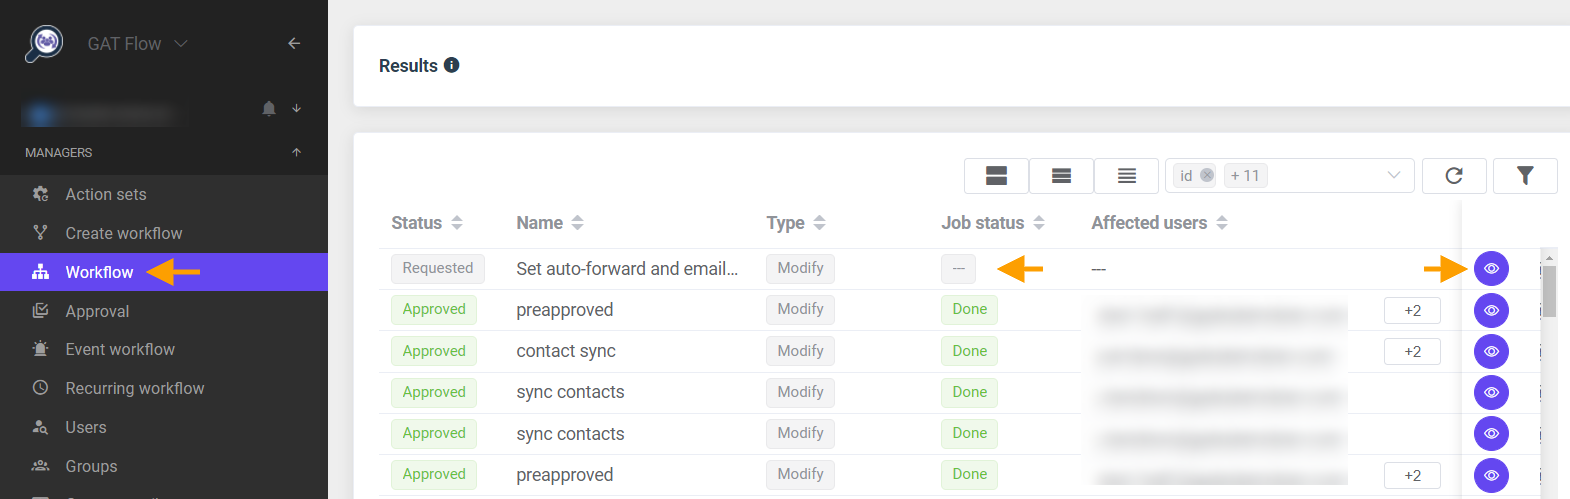 GAT Flow   Set email delegation and auto-forward to Manager 5